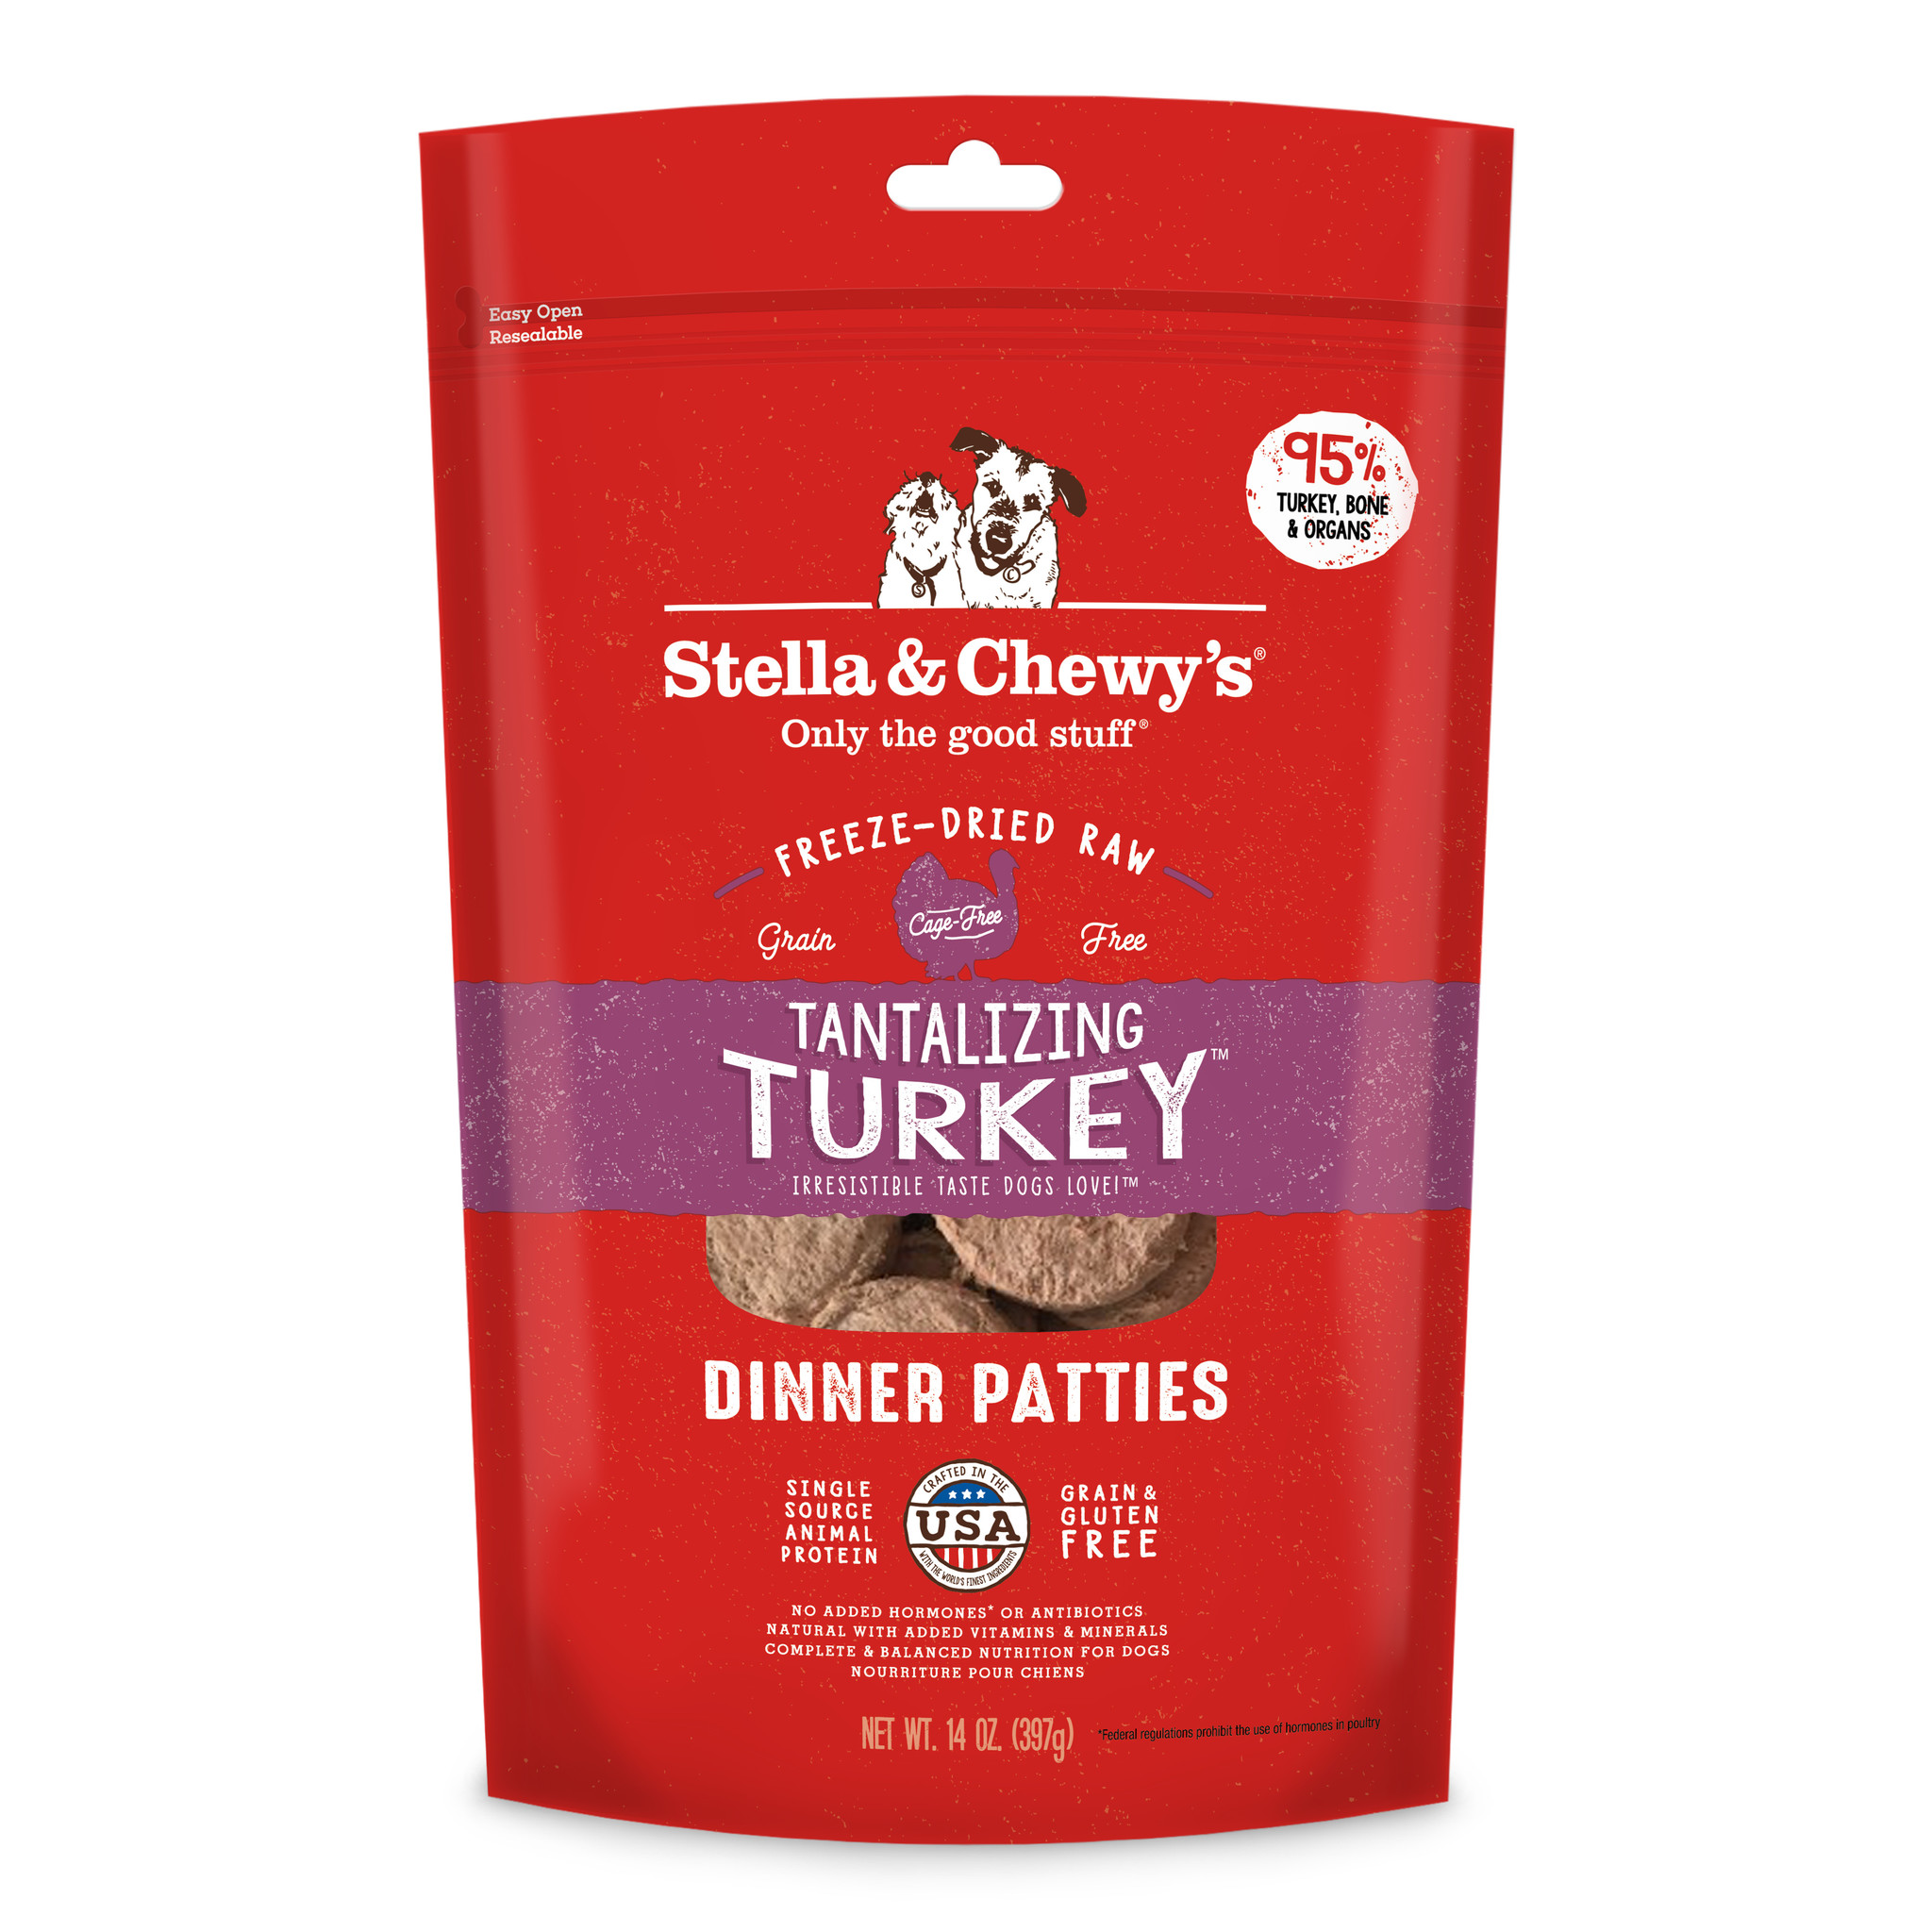 Stella & Chewys Stella & Chewys Tantalizing Turkey Freeze Dried Dinner Patties